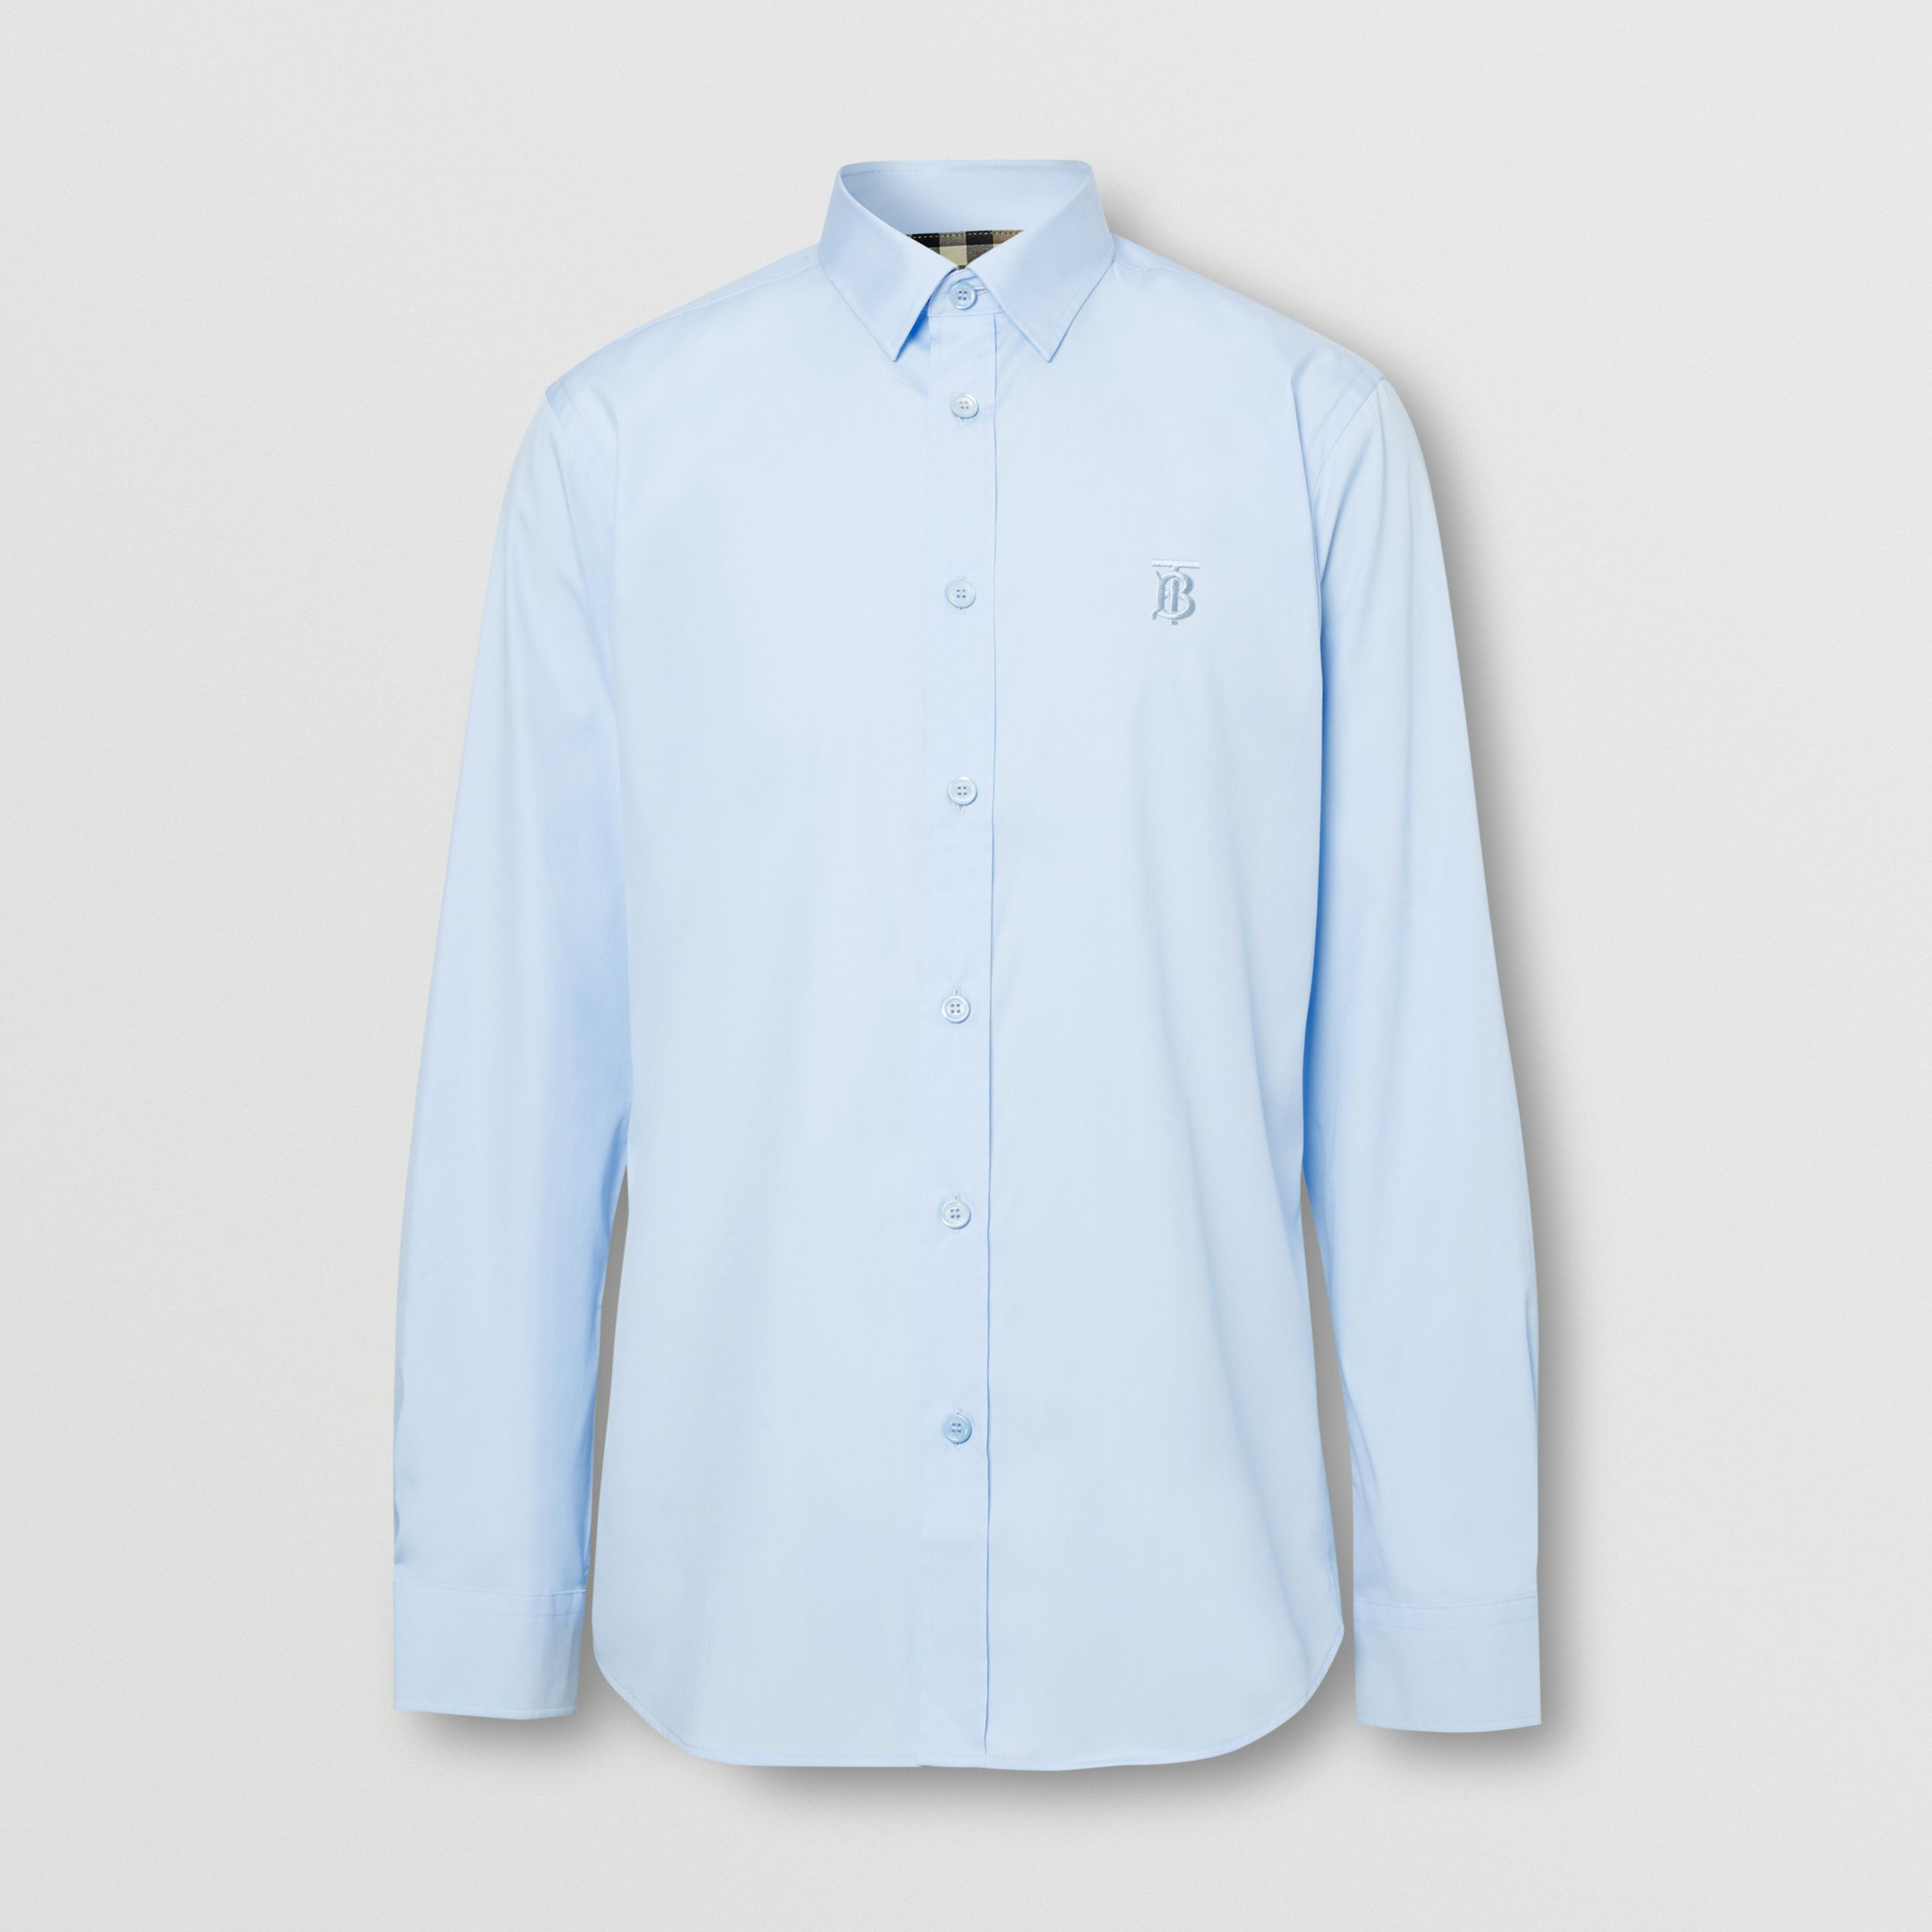 Classic Fit Monogram Motif Cotton Oxford Shirt in Sky Blue - Men | Burberry - 4